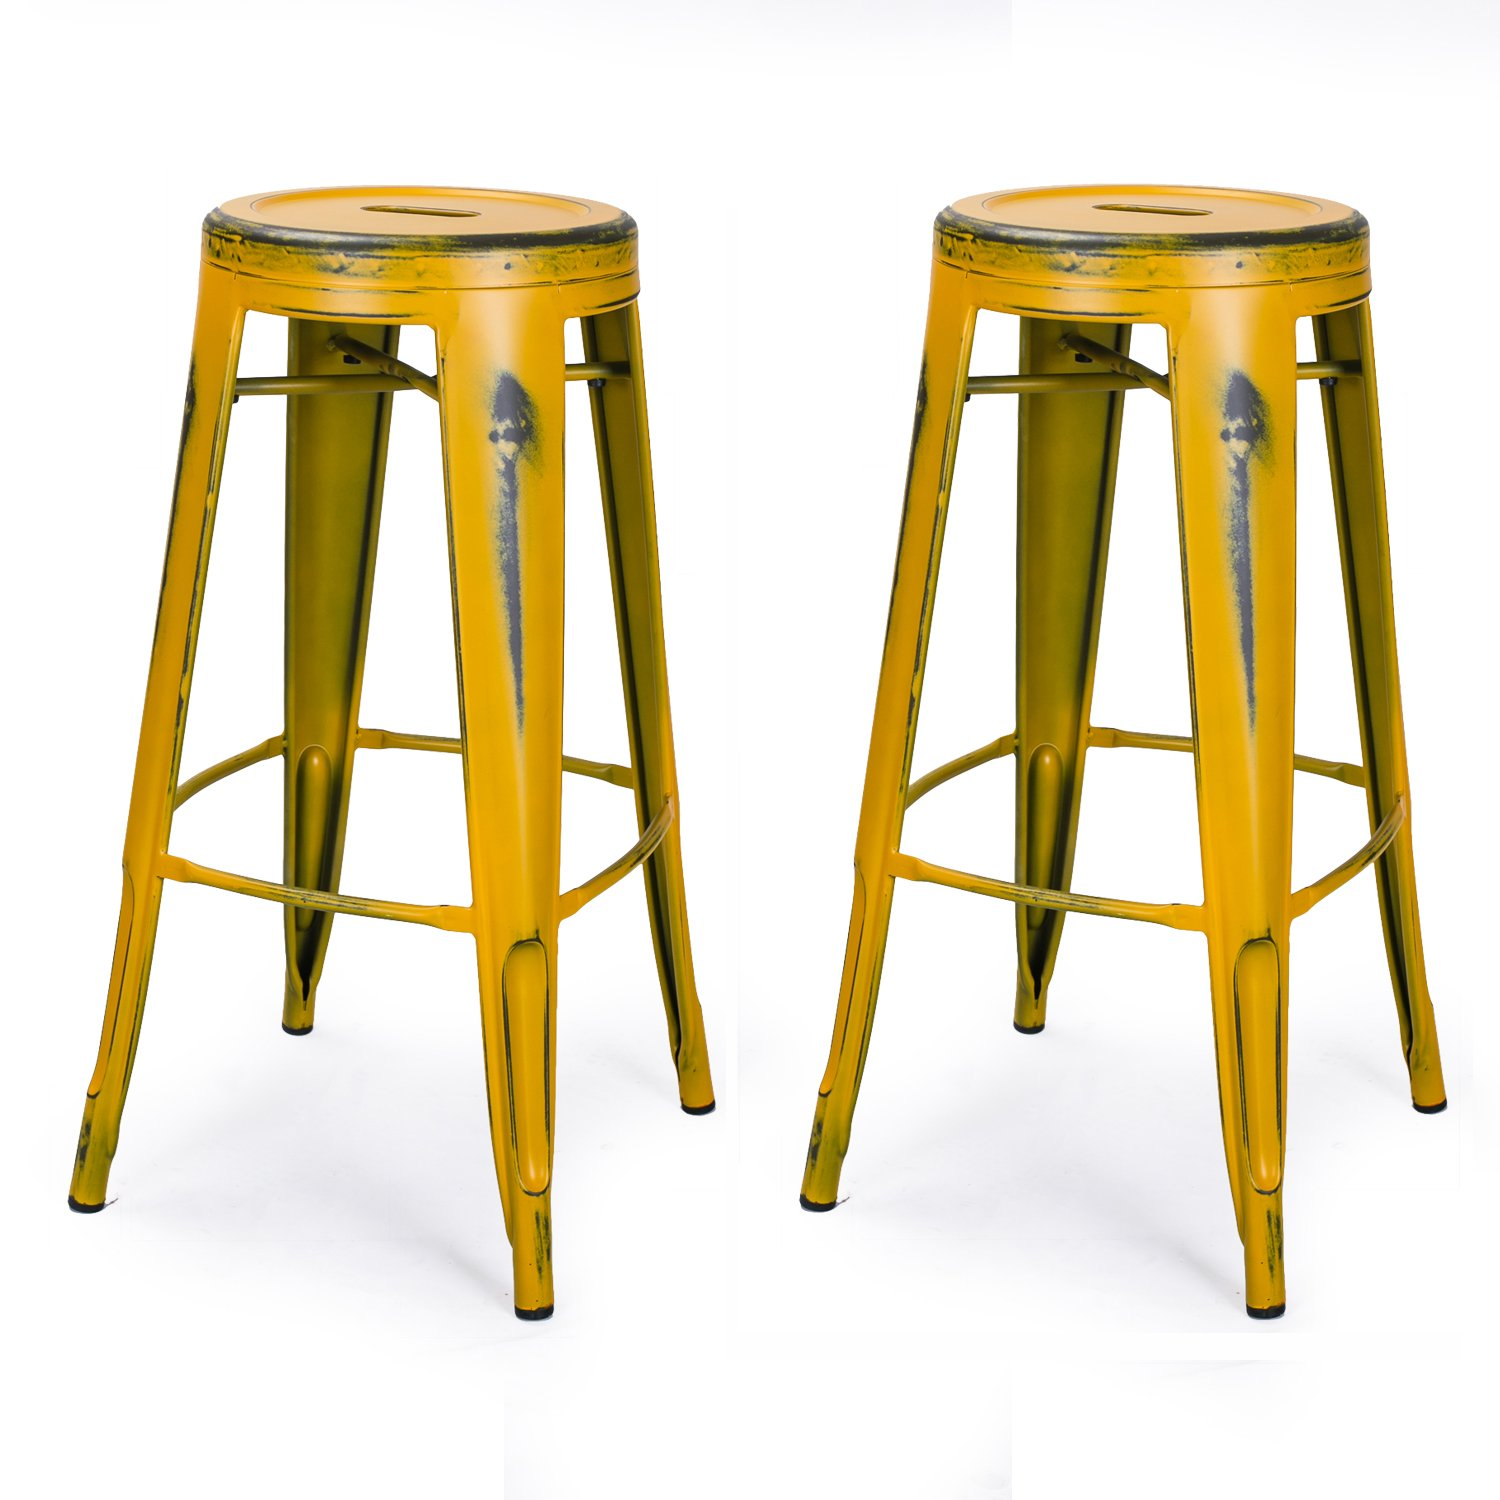 Joveco 30 Inch Vintage Inspired Metal Bar Stools Set Of 2